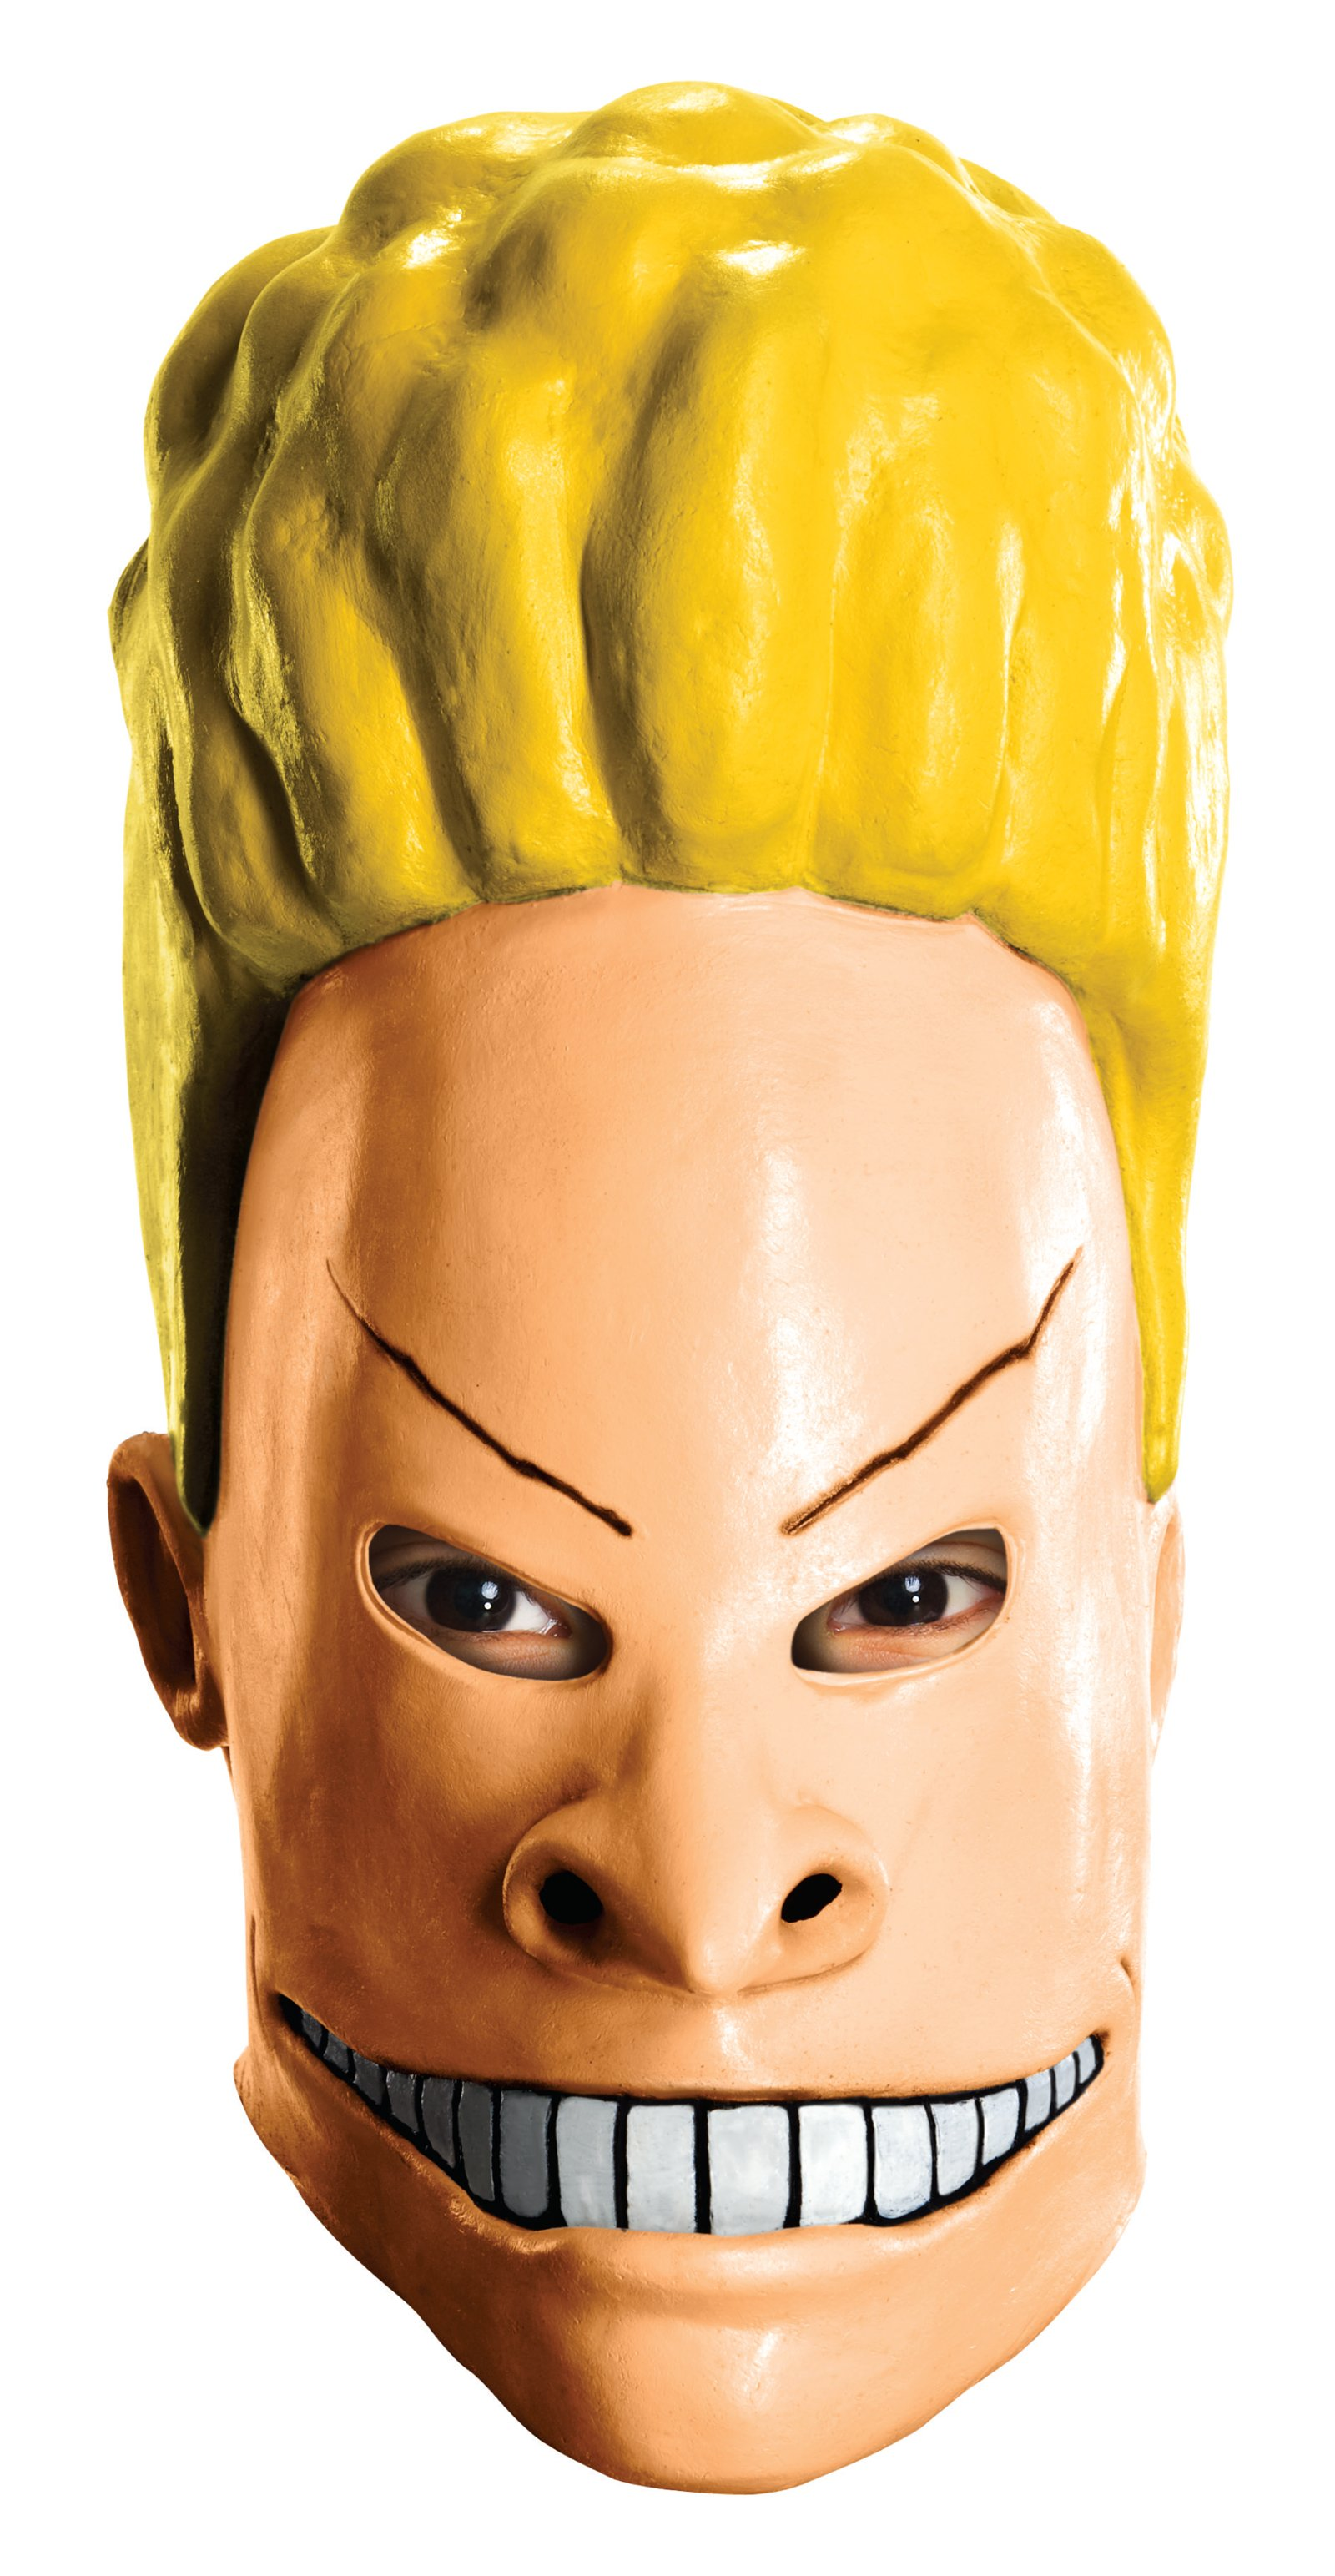 Beavis and Butt-Head - Beavis 3/4 Mask (Adult)